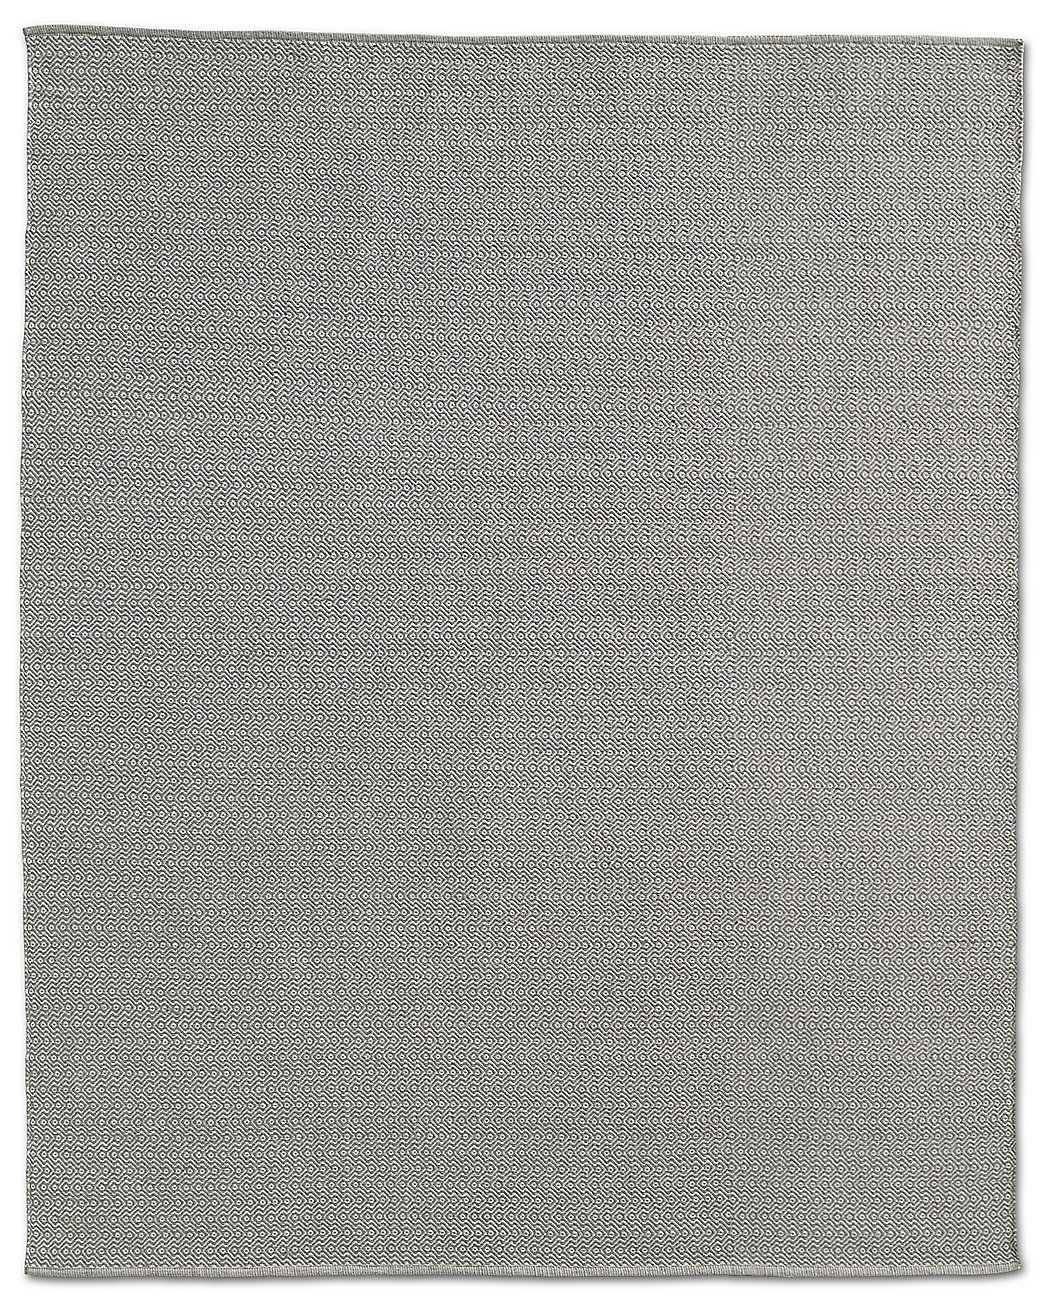 Geometric Flatweave Outdoor Rug - White/Silver